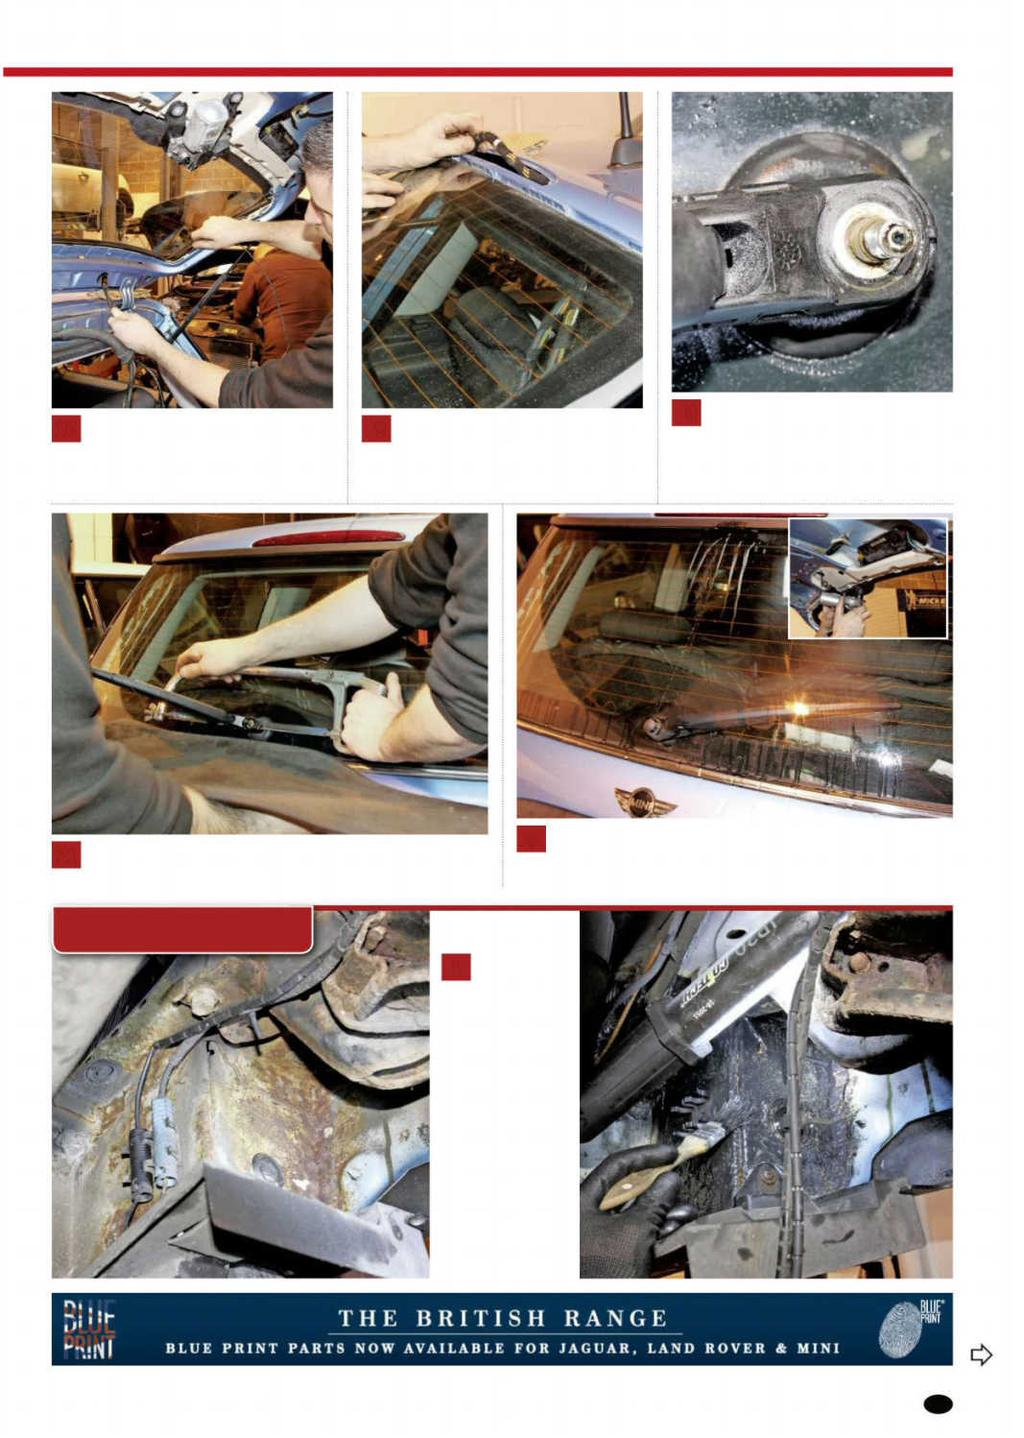 Win Get Your Engine Running Healthier Tailgate Respray Diesel Audi 20 Tdi Pd Injector Wiring Loom With Glow Plug Connections Cm Project 2004 Mini One 16 We Fed A Thick Length Of Wire Through The Top